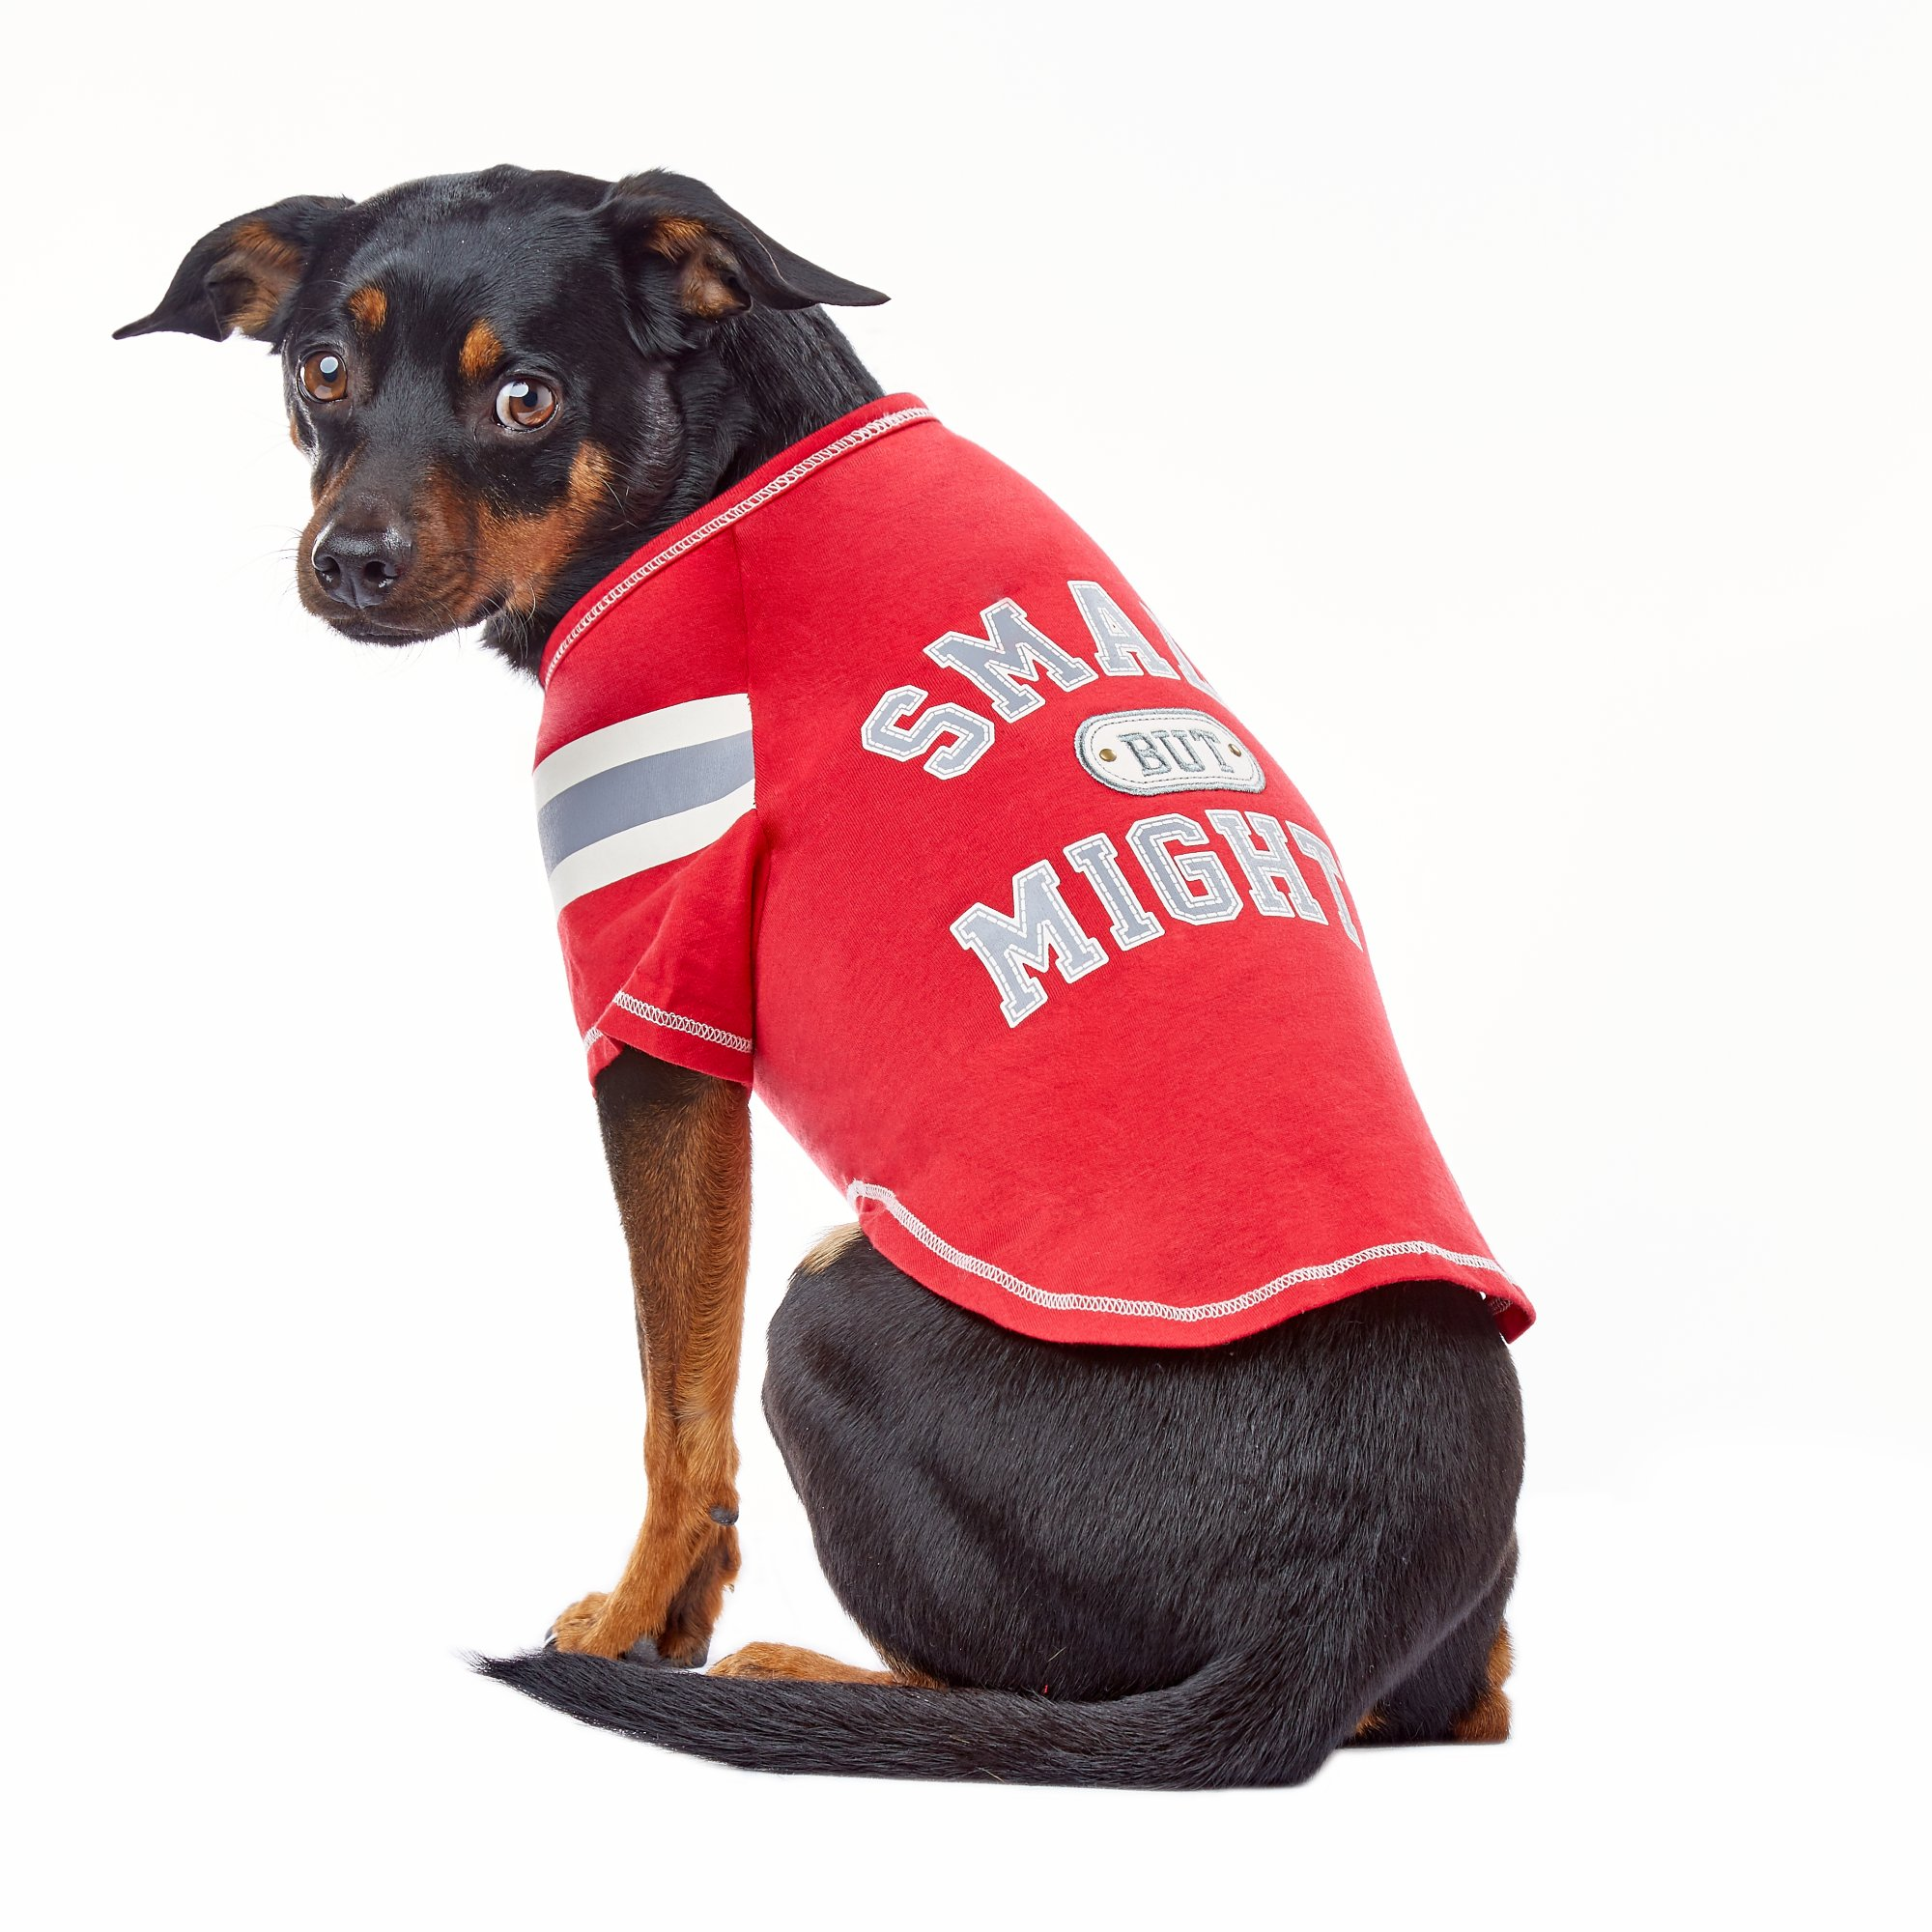 Wag-A-Tude Red Small But Mighty Raglan T Shirt